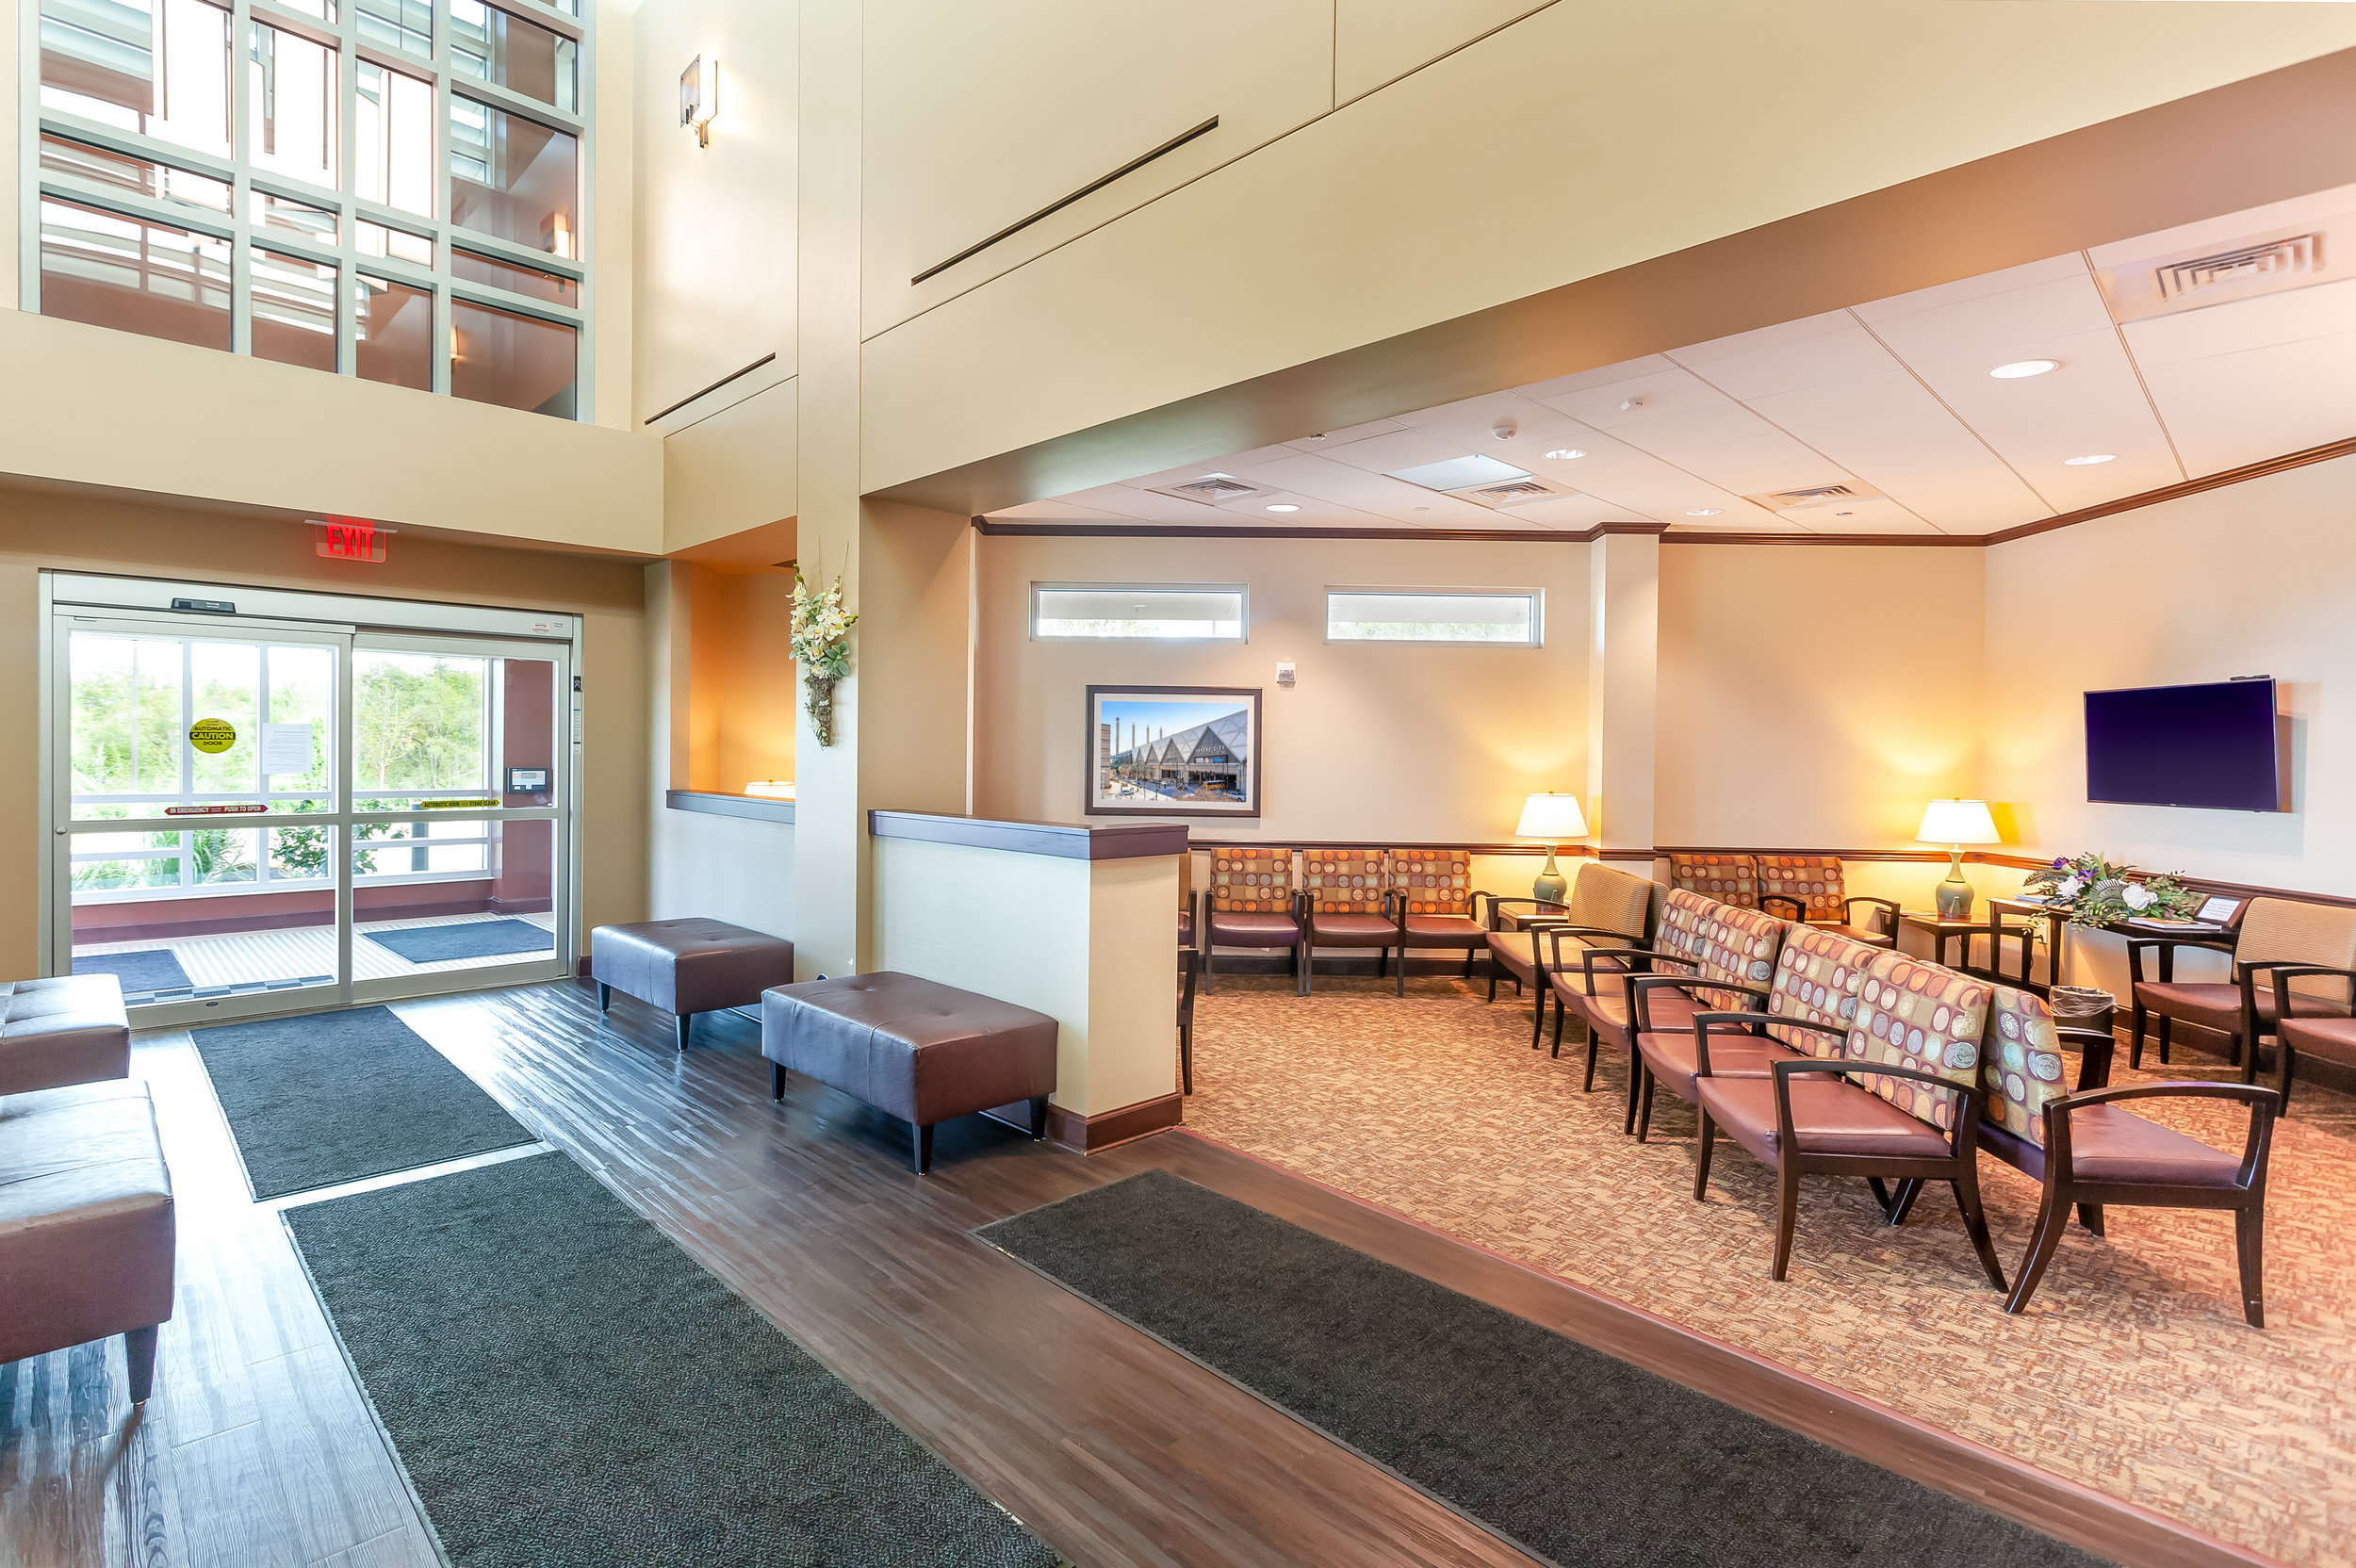 Surgicenter-of-Kansas-City-for-Hereford-Dooley-Architects-by-Jacia-Phillips--5.jpg